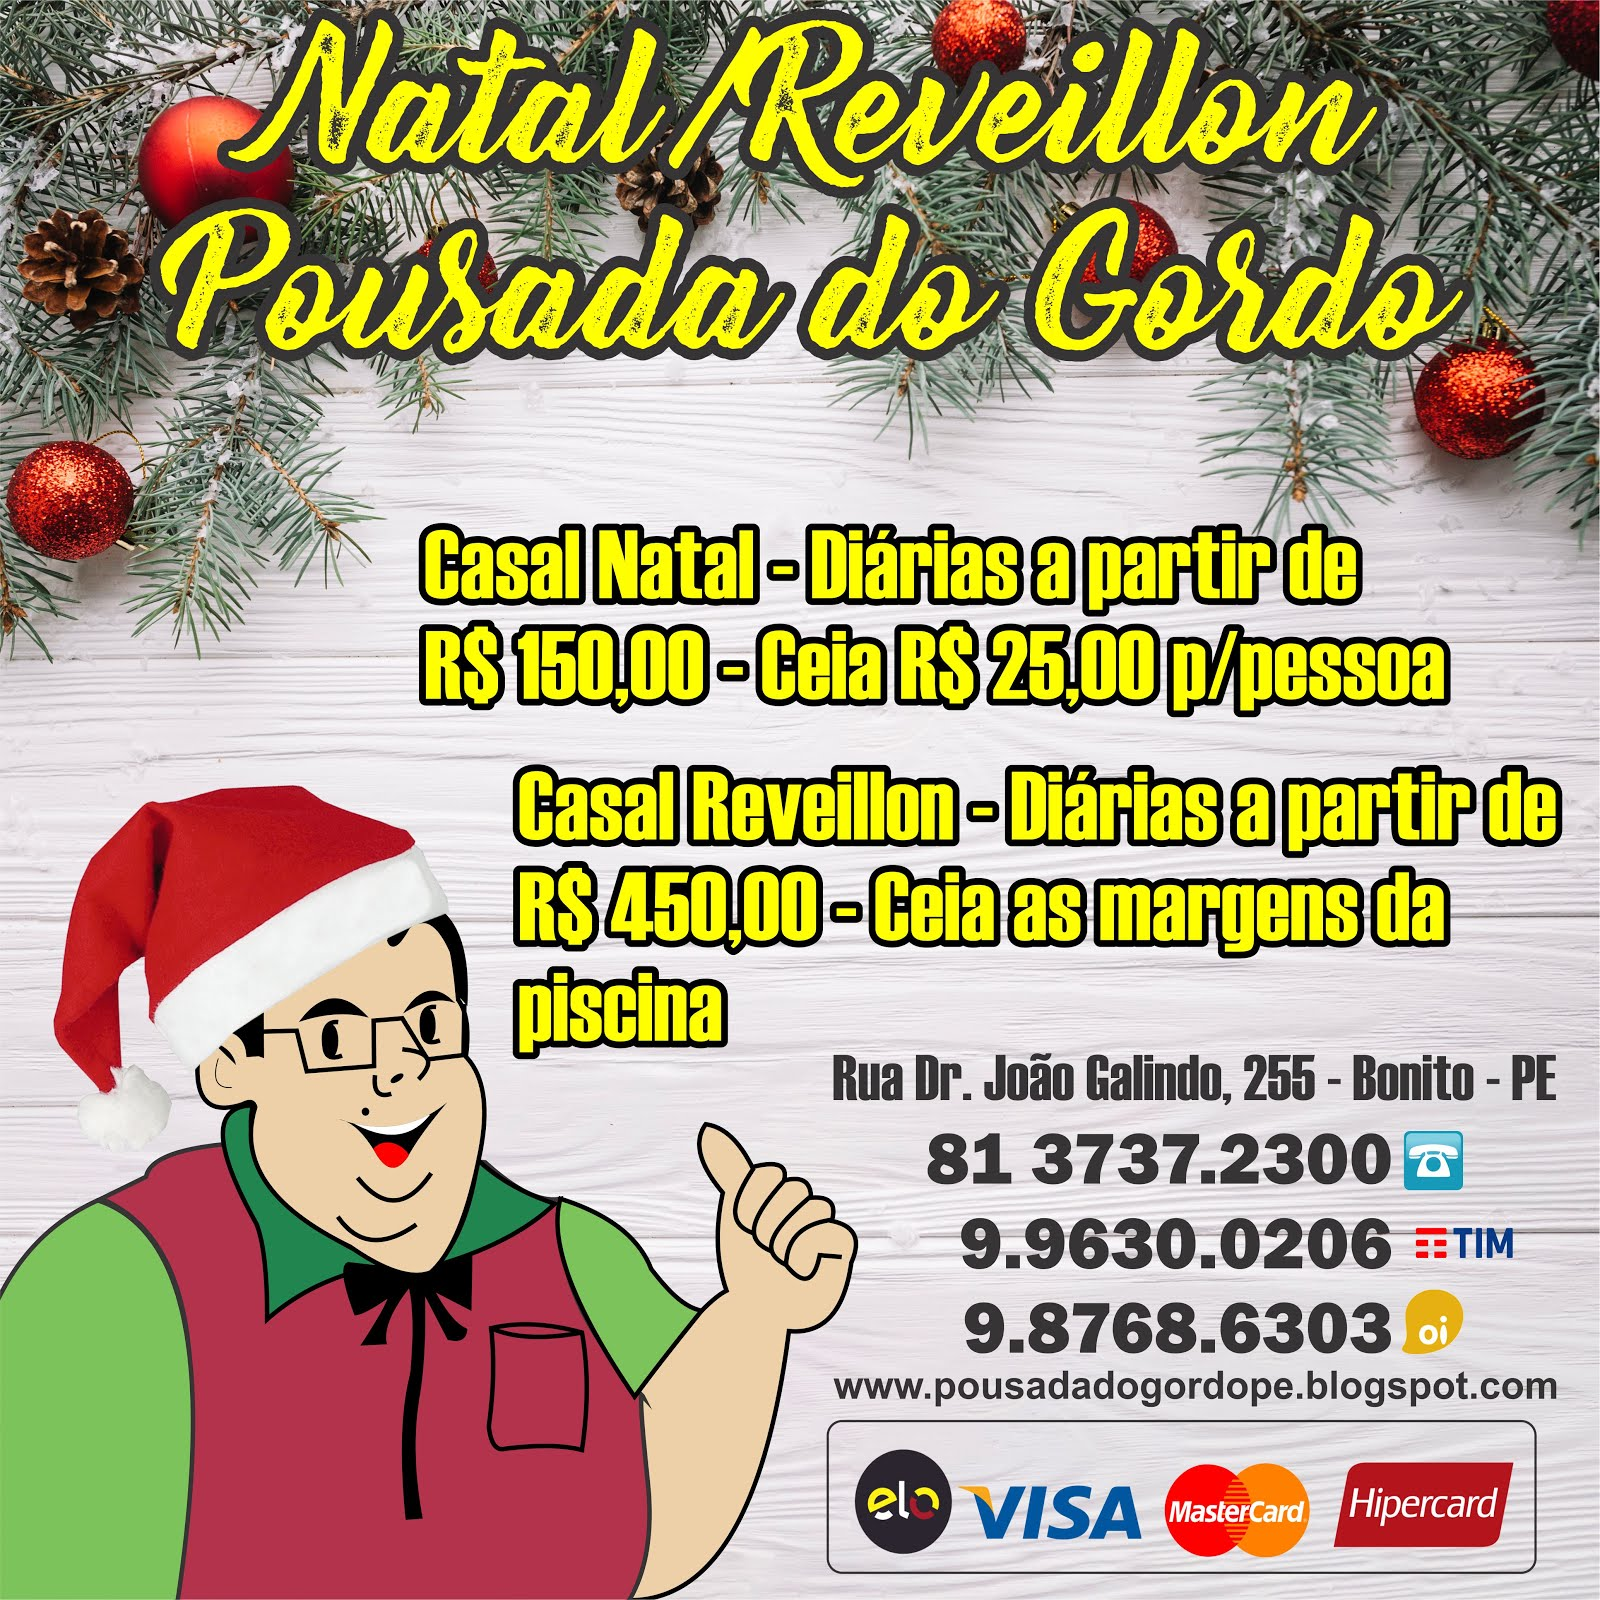 Natal/Reveillon Pousada do Gordo